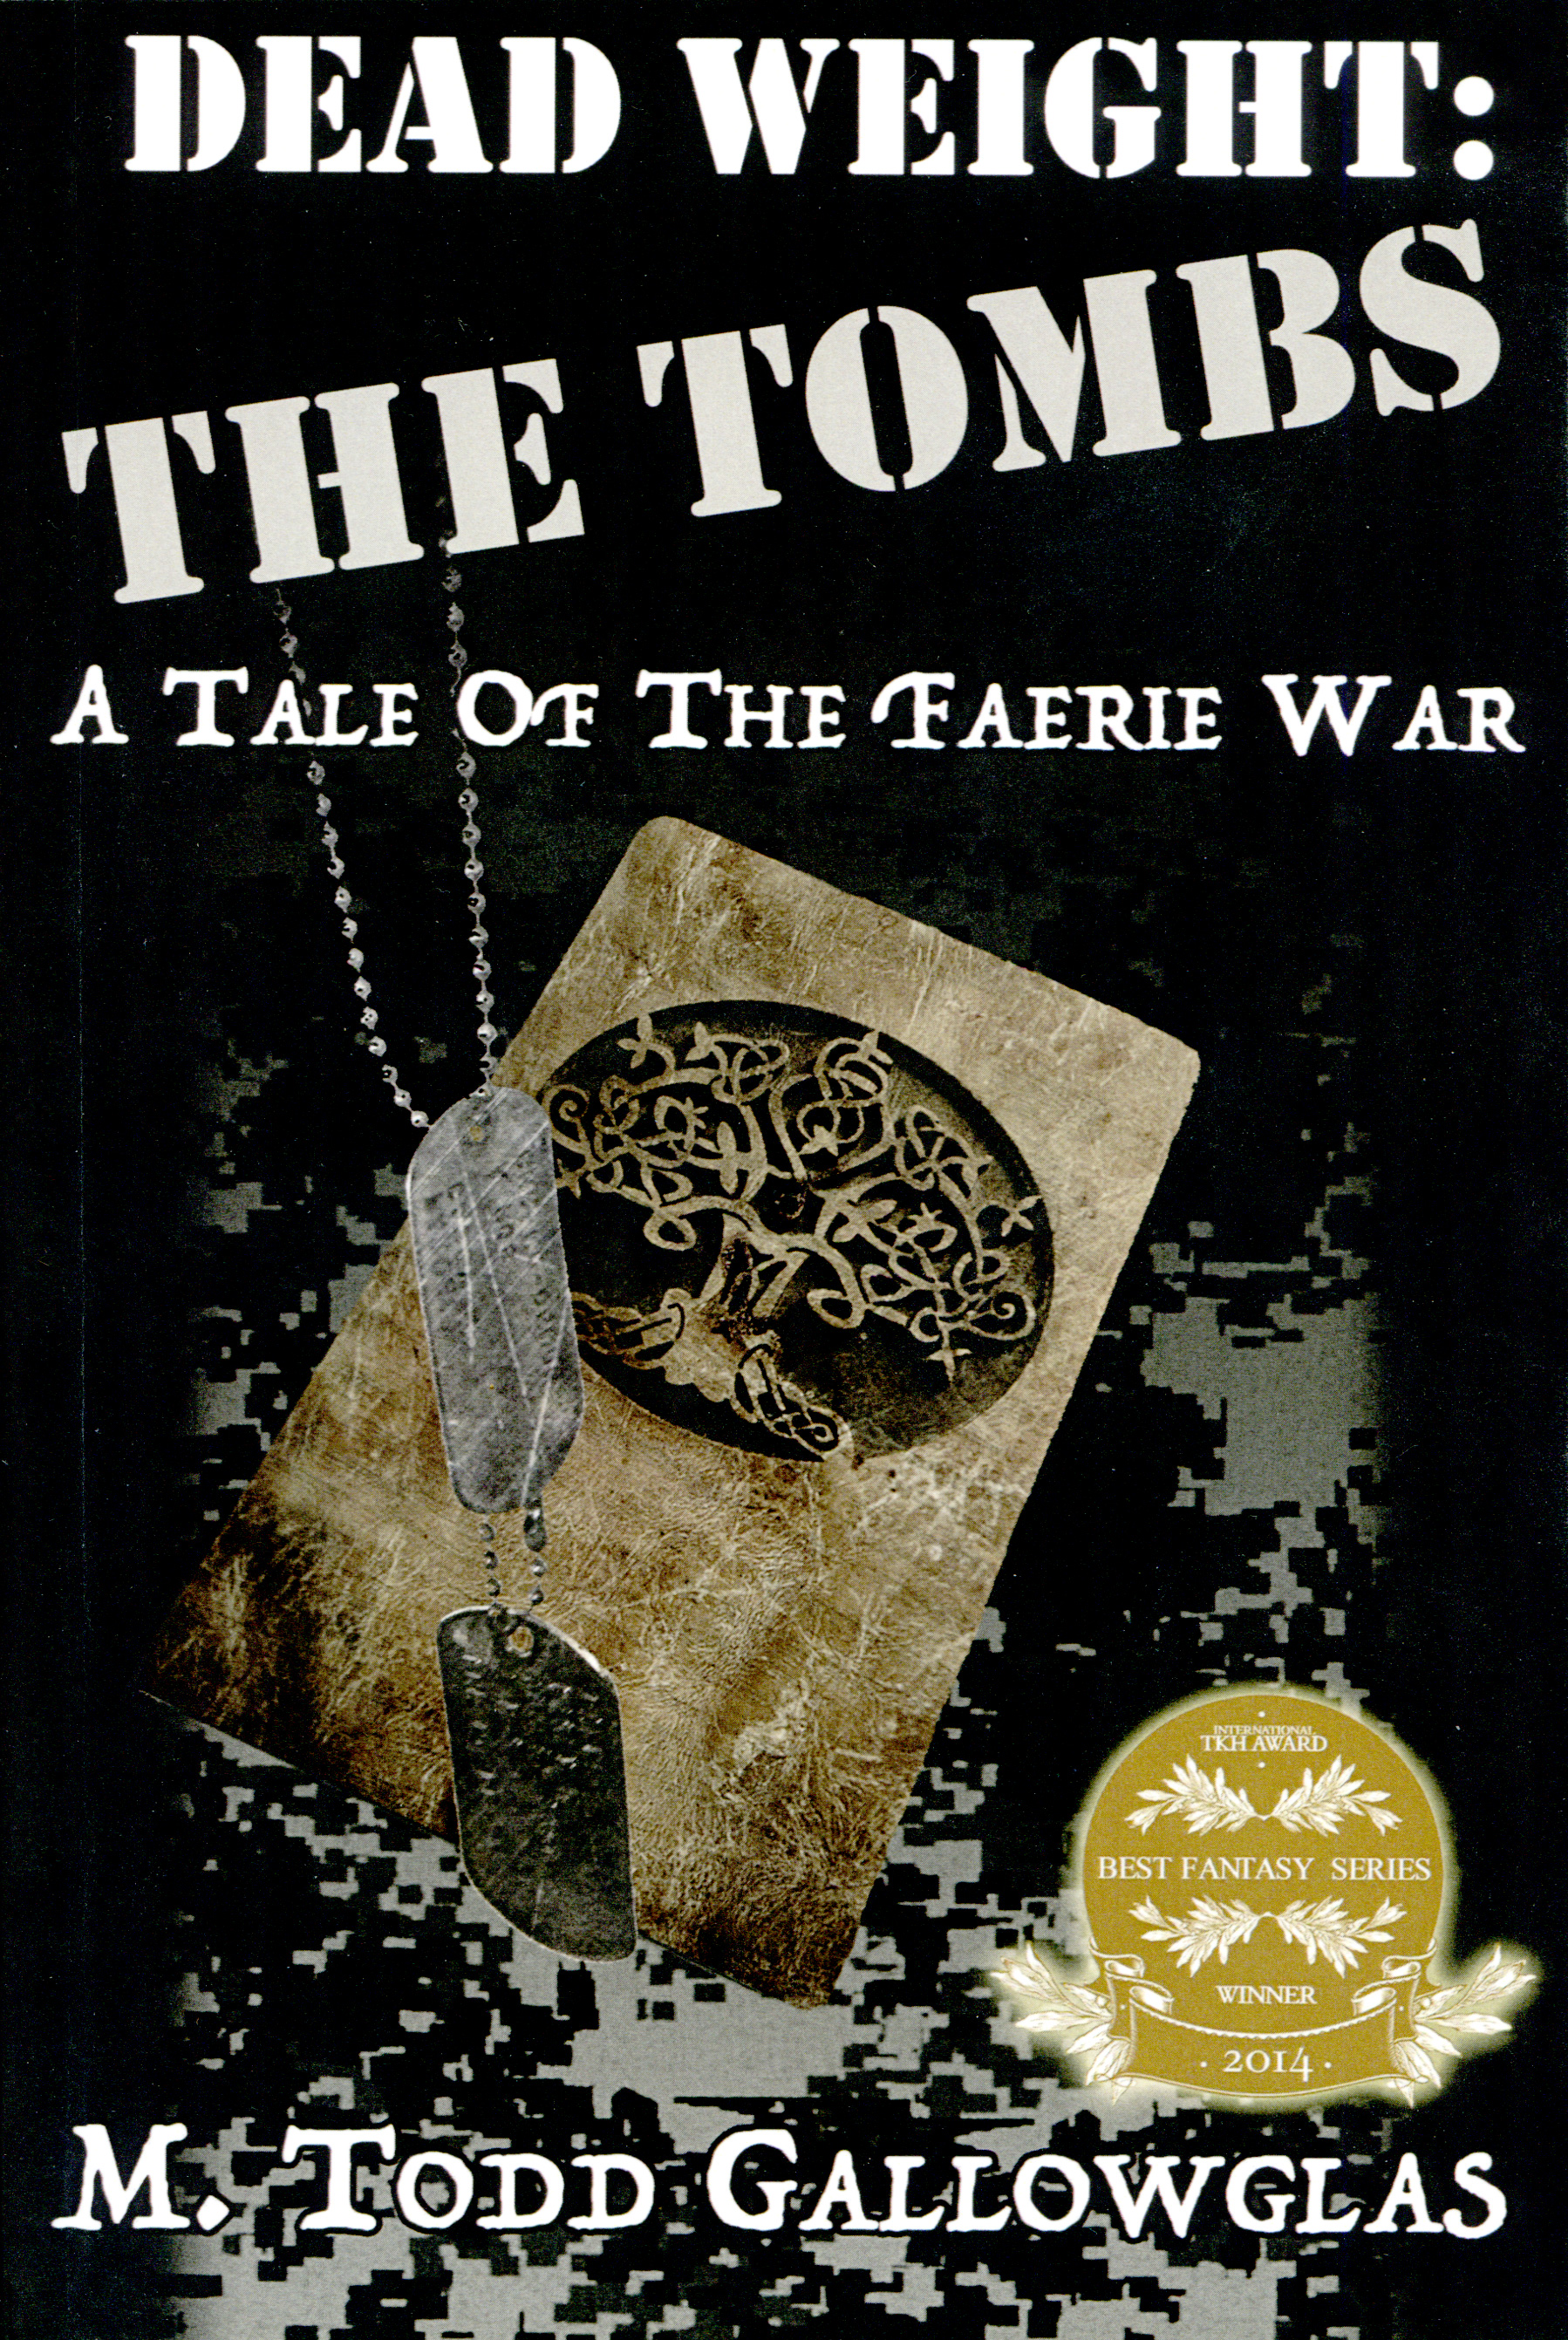 """Dead Weight - The Tombs"" by M. Todd Gallowglas."